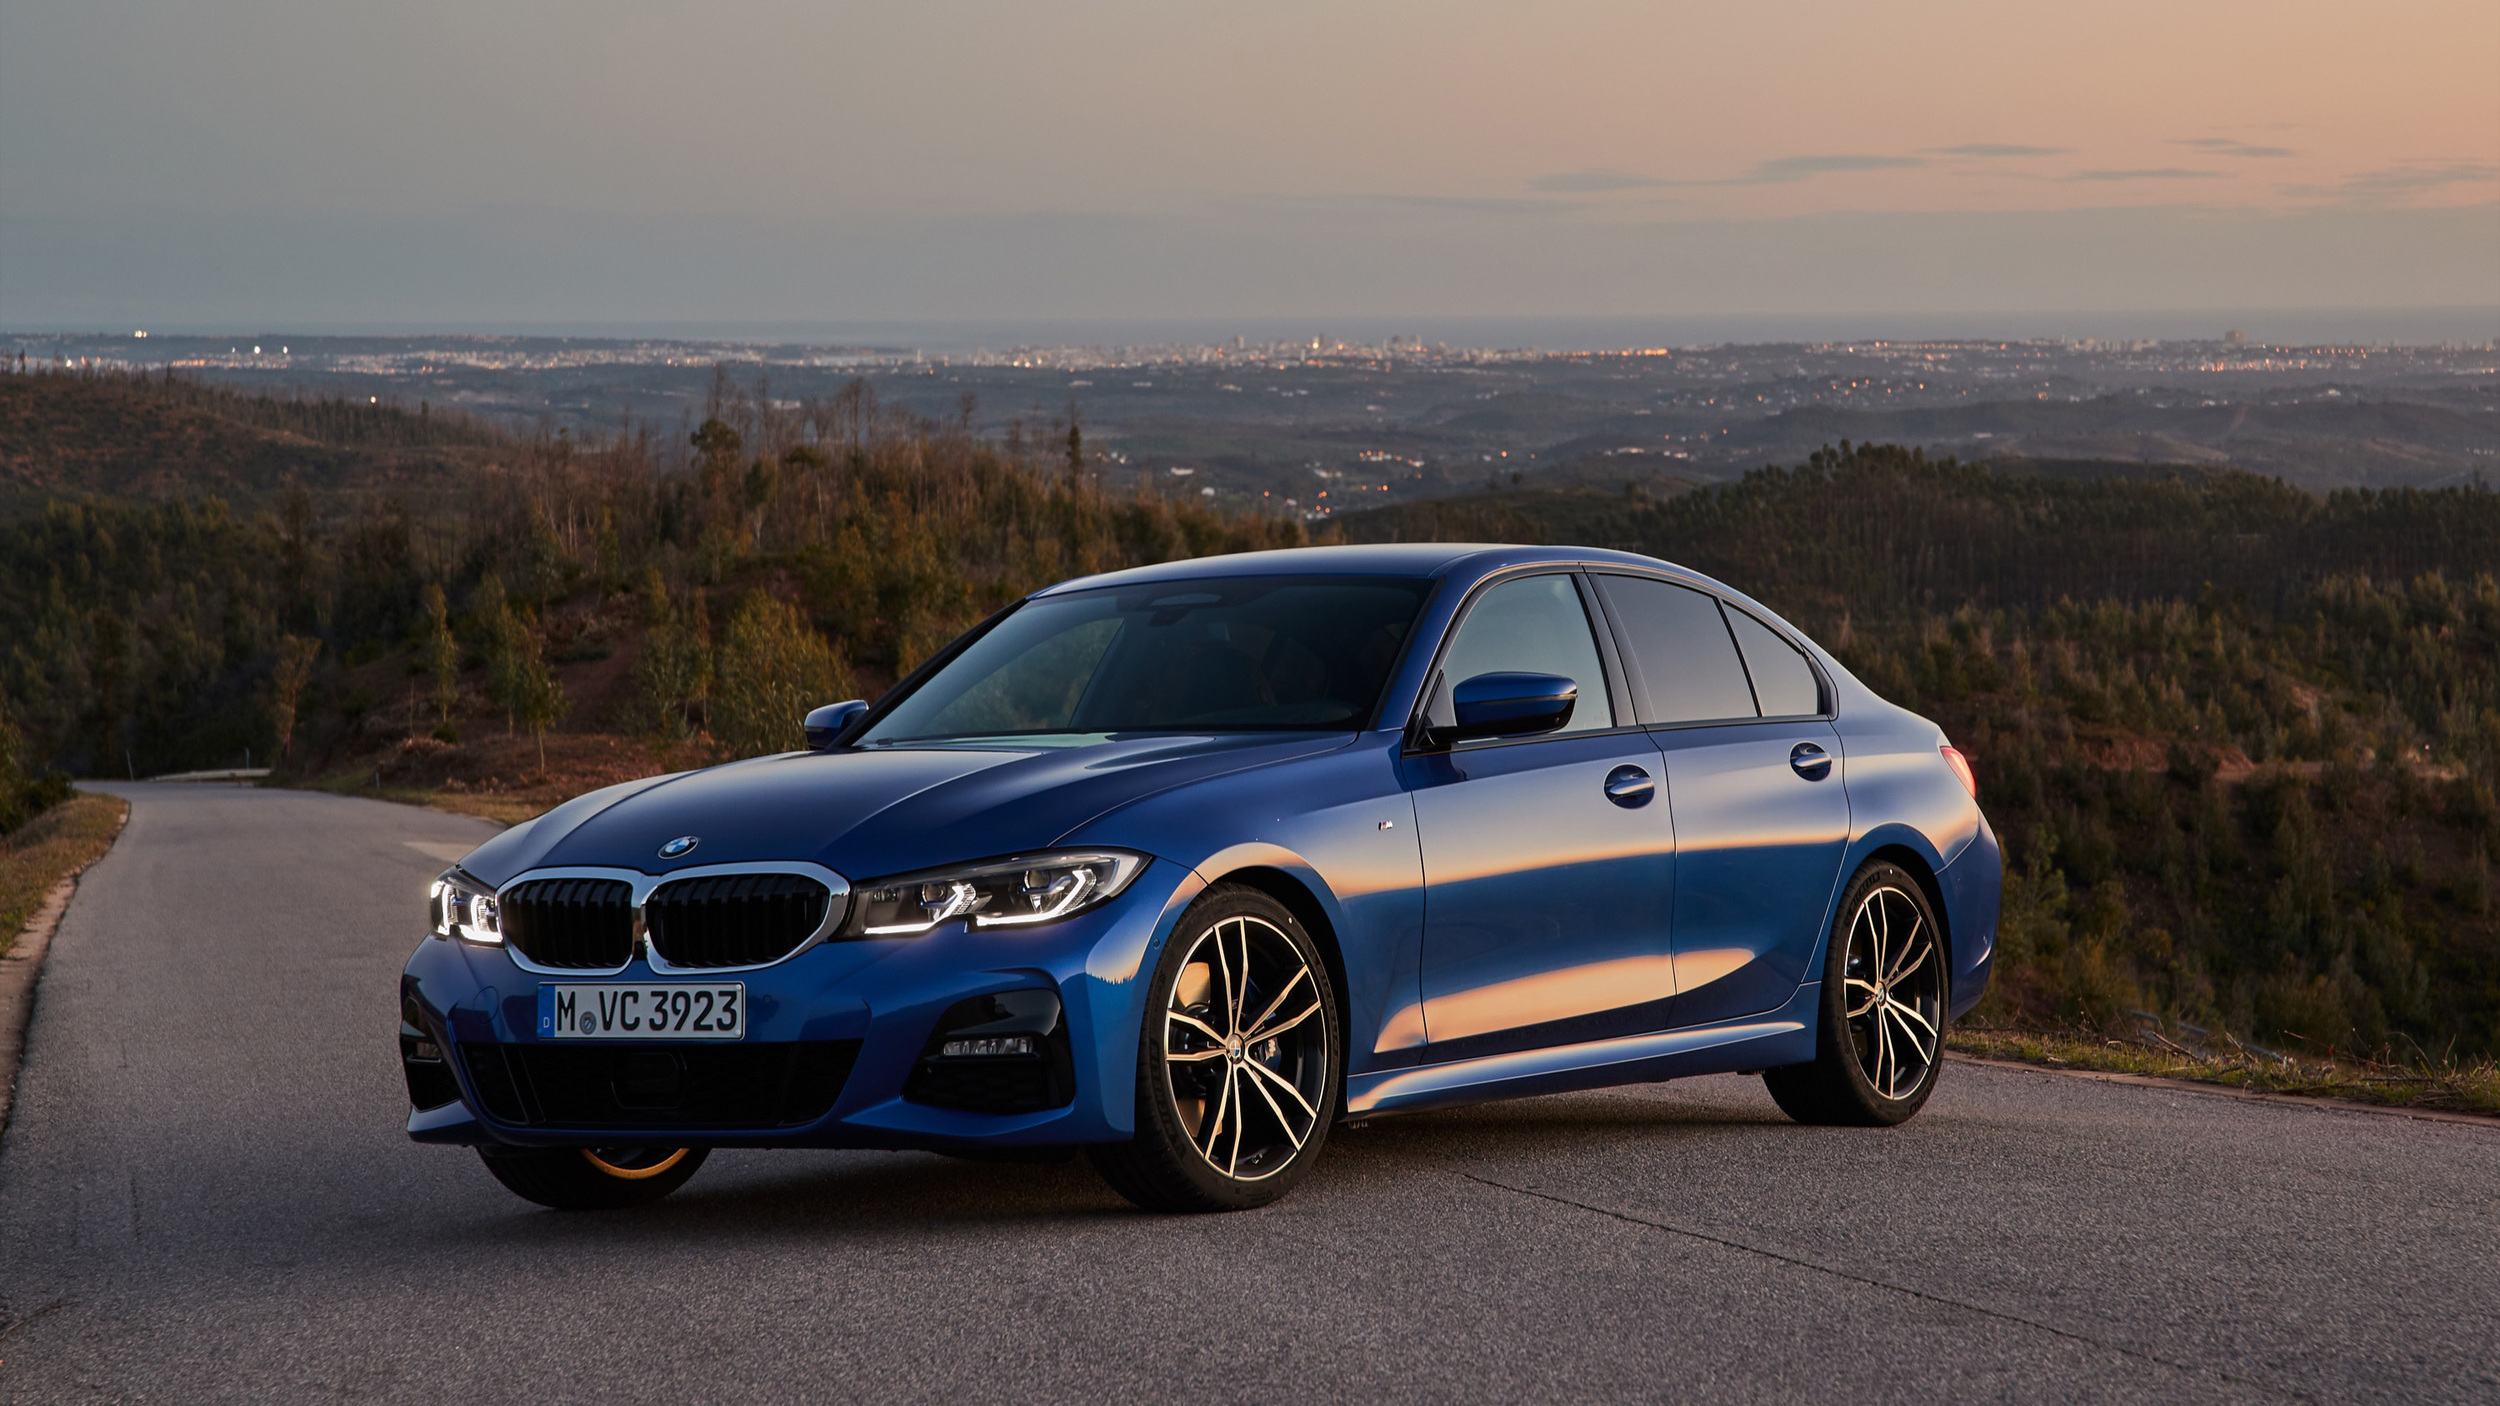 Certified Pre Owned Bmw >> 2019 BMW 330i driving review of the redesigned 3 Series | Autoblog